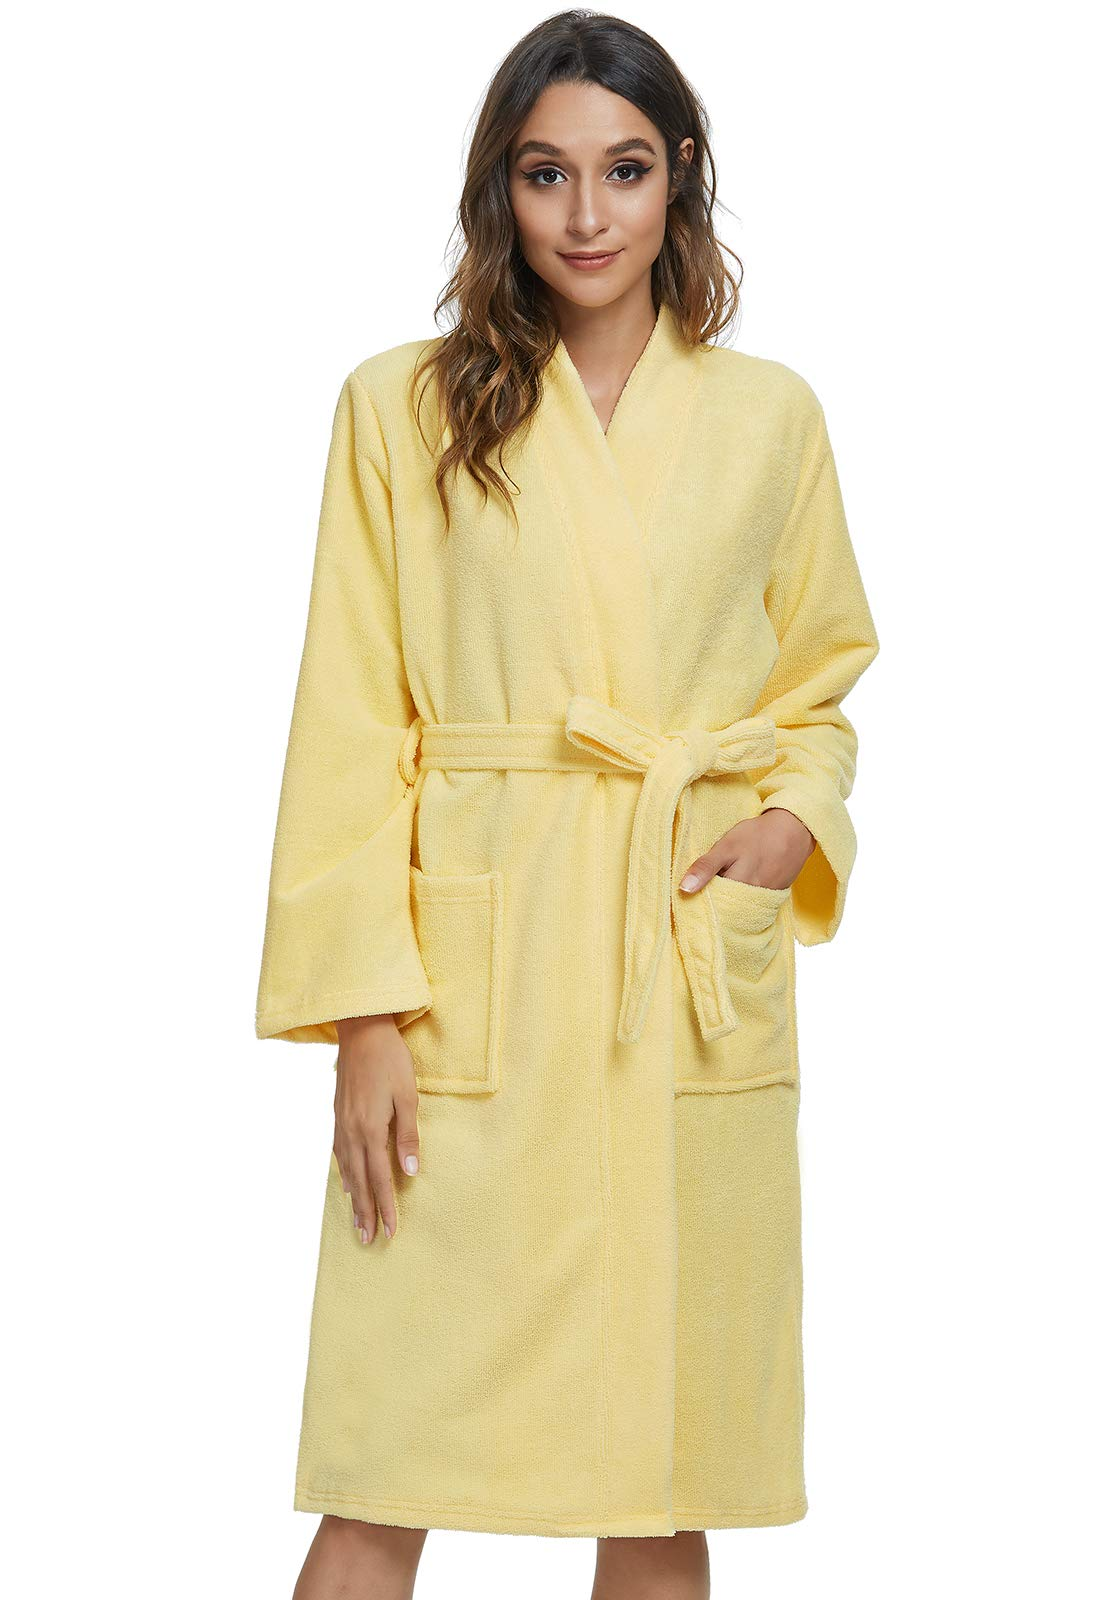 Image of Comfy Absorbent Yellow Bath Robe for Women - More Colors